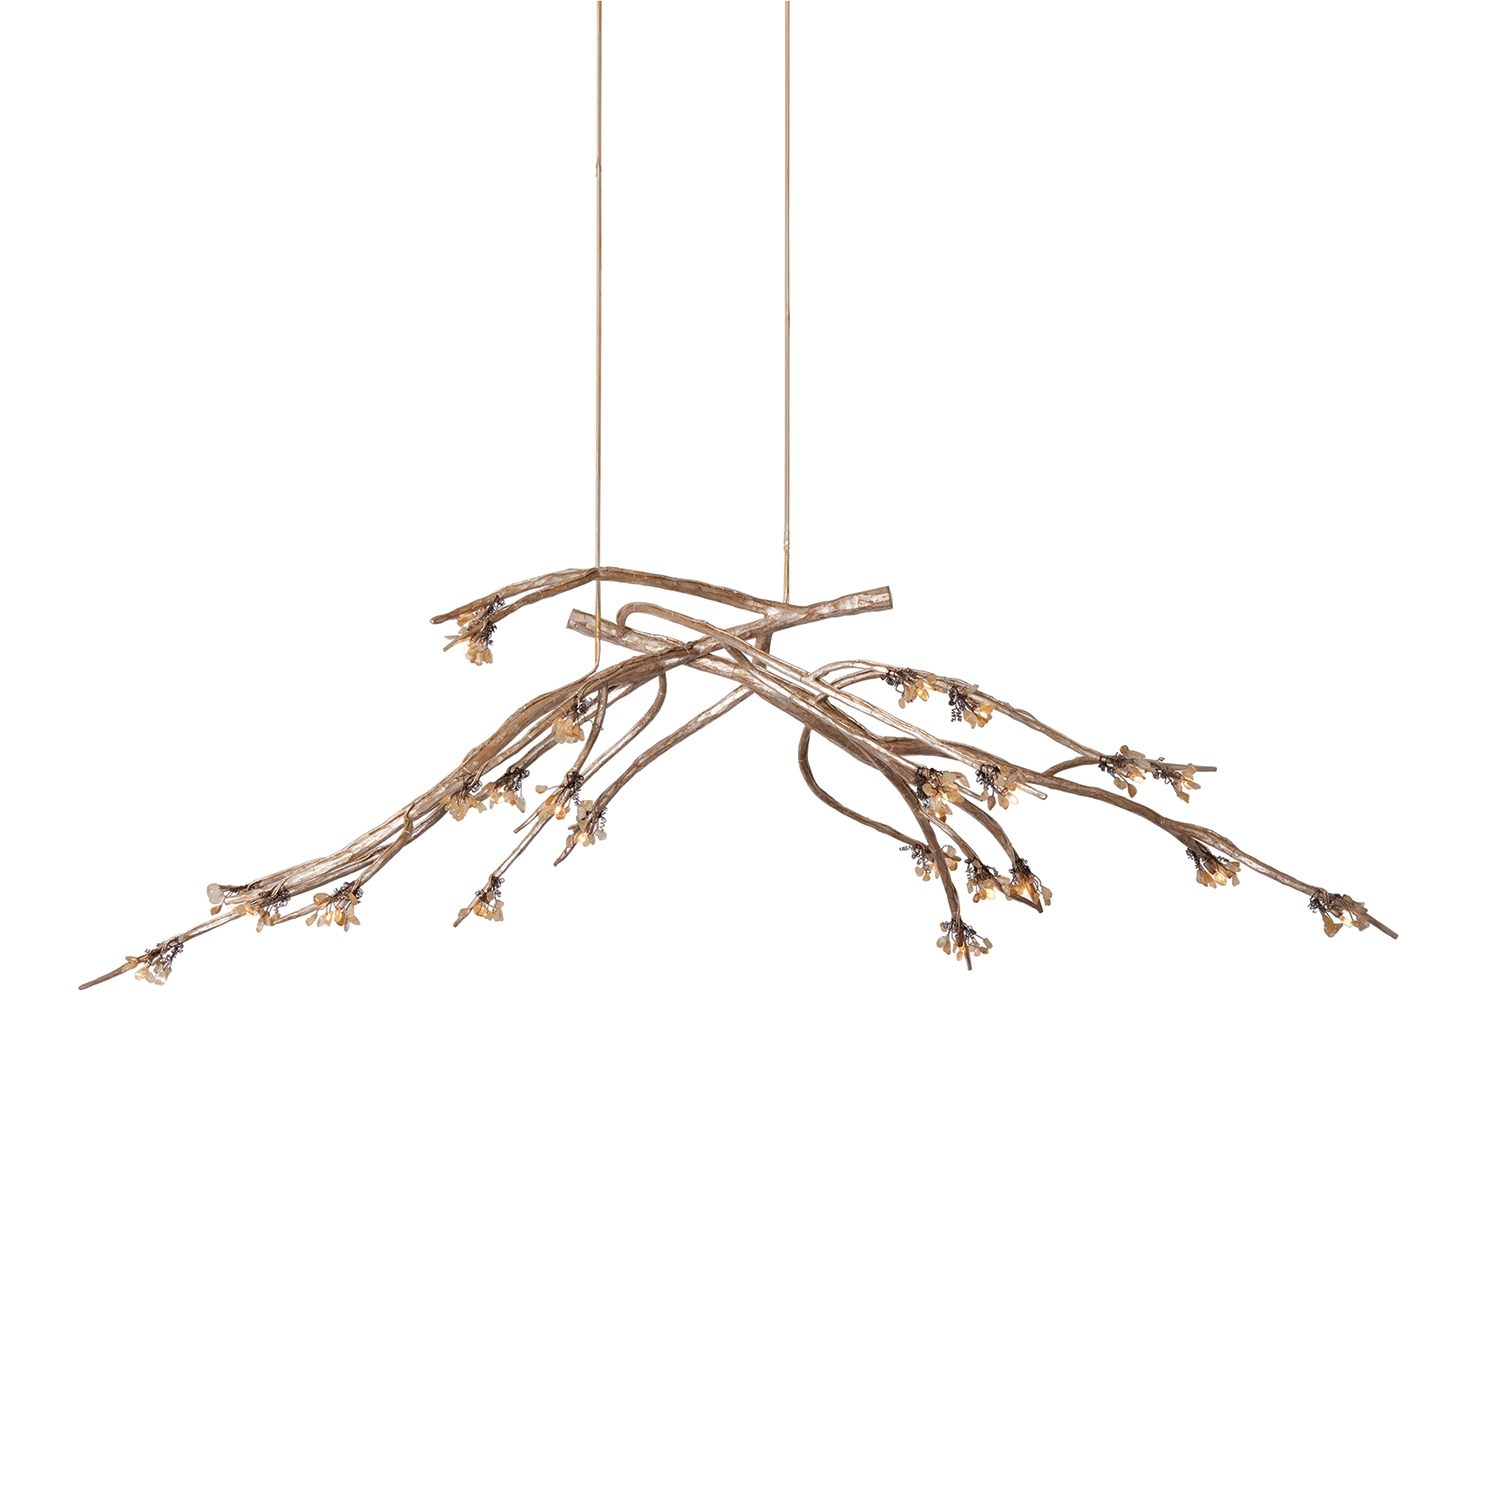 Twig Chandelier Large Brown 8 Light Iron Twig Chandelier Tree Pertaining To Branch Chandeliers (Image 15 of 15)